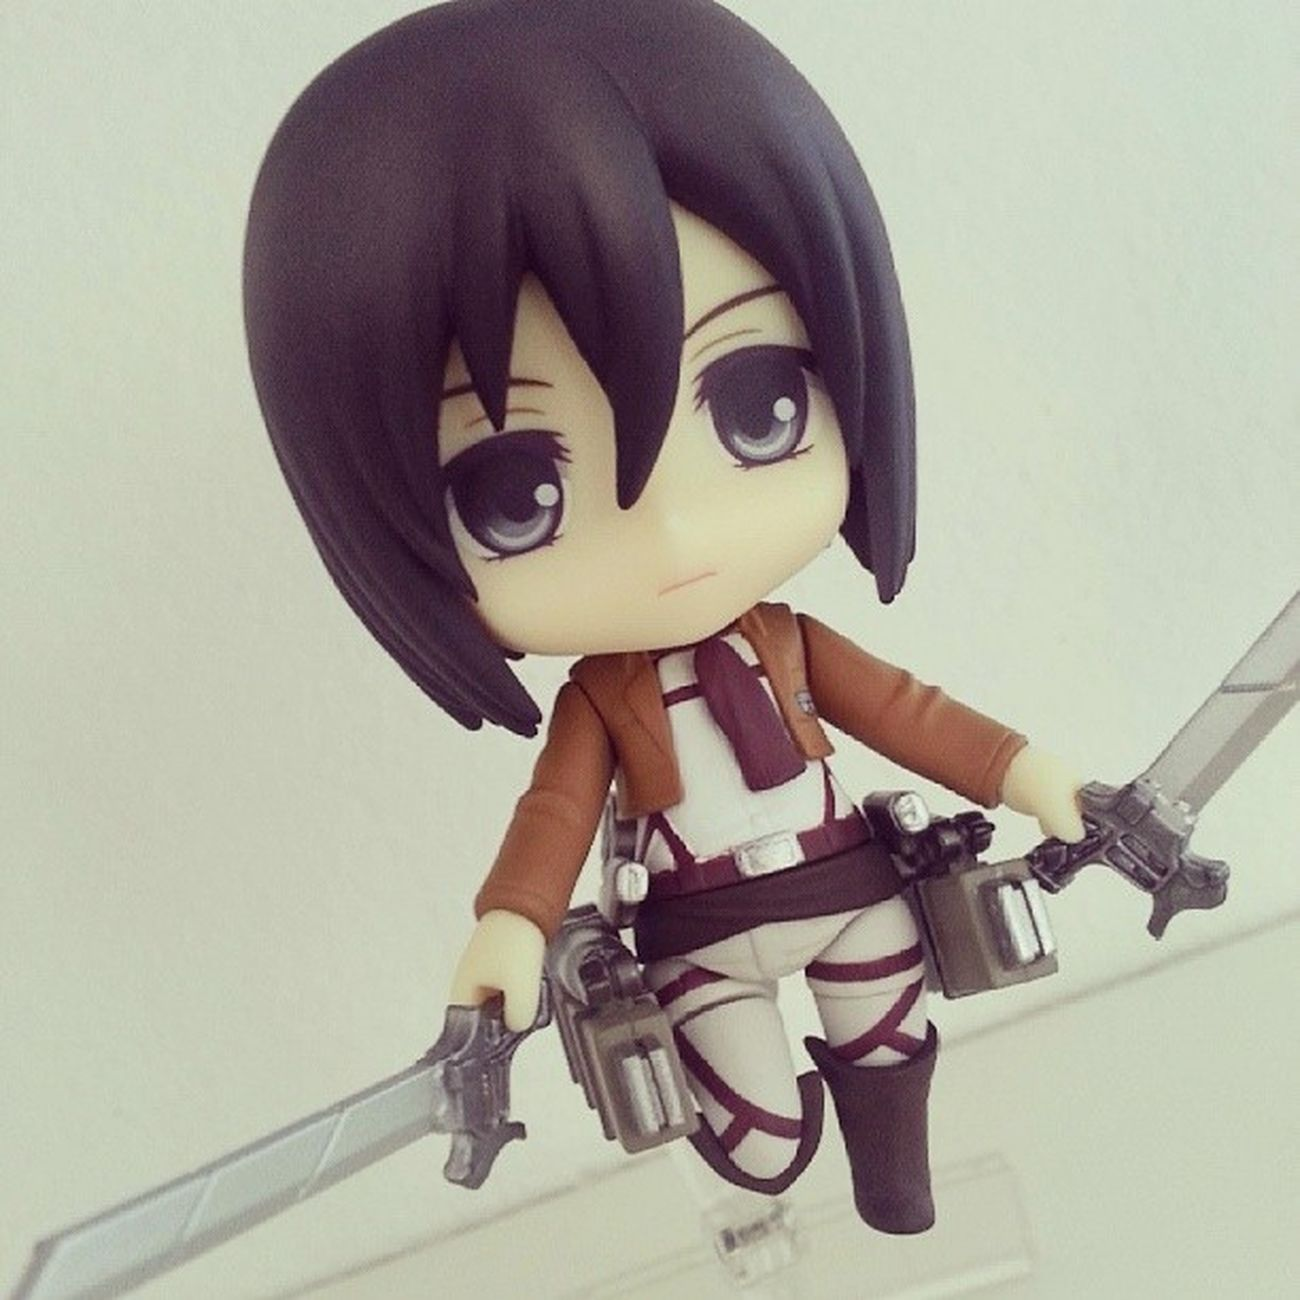 Mikasa Ackerman Nendoroid (Good Smile Company) Mikasaackerman Ackerman Attackontitan Figure ShingekiNoKyojin Shingeki Nendoroid anime manga Collection